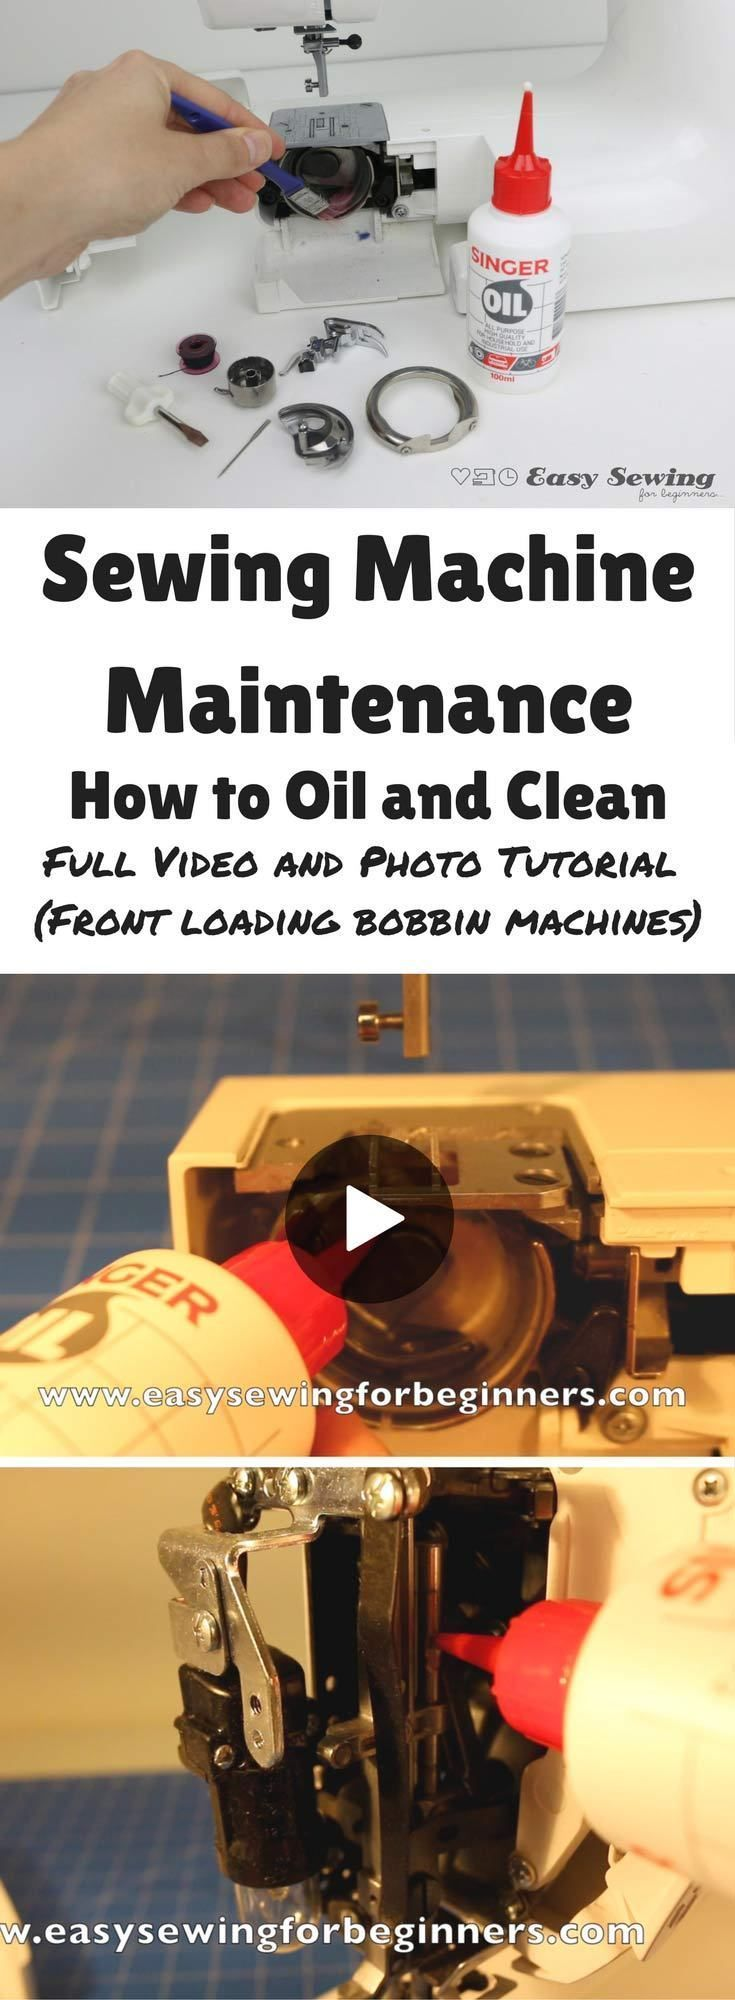 Sewing Machine Maintenance How to Oil and Clean video tutorial for front loading…